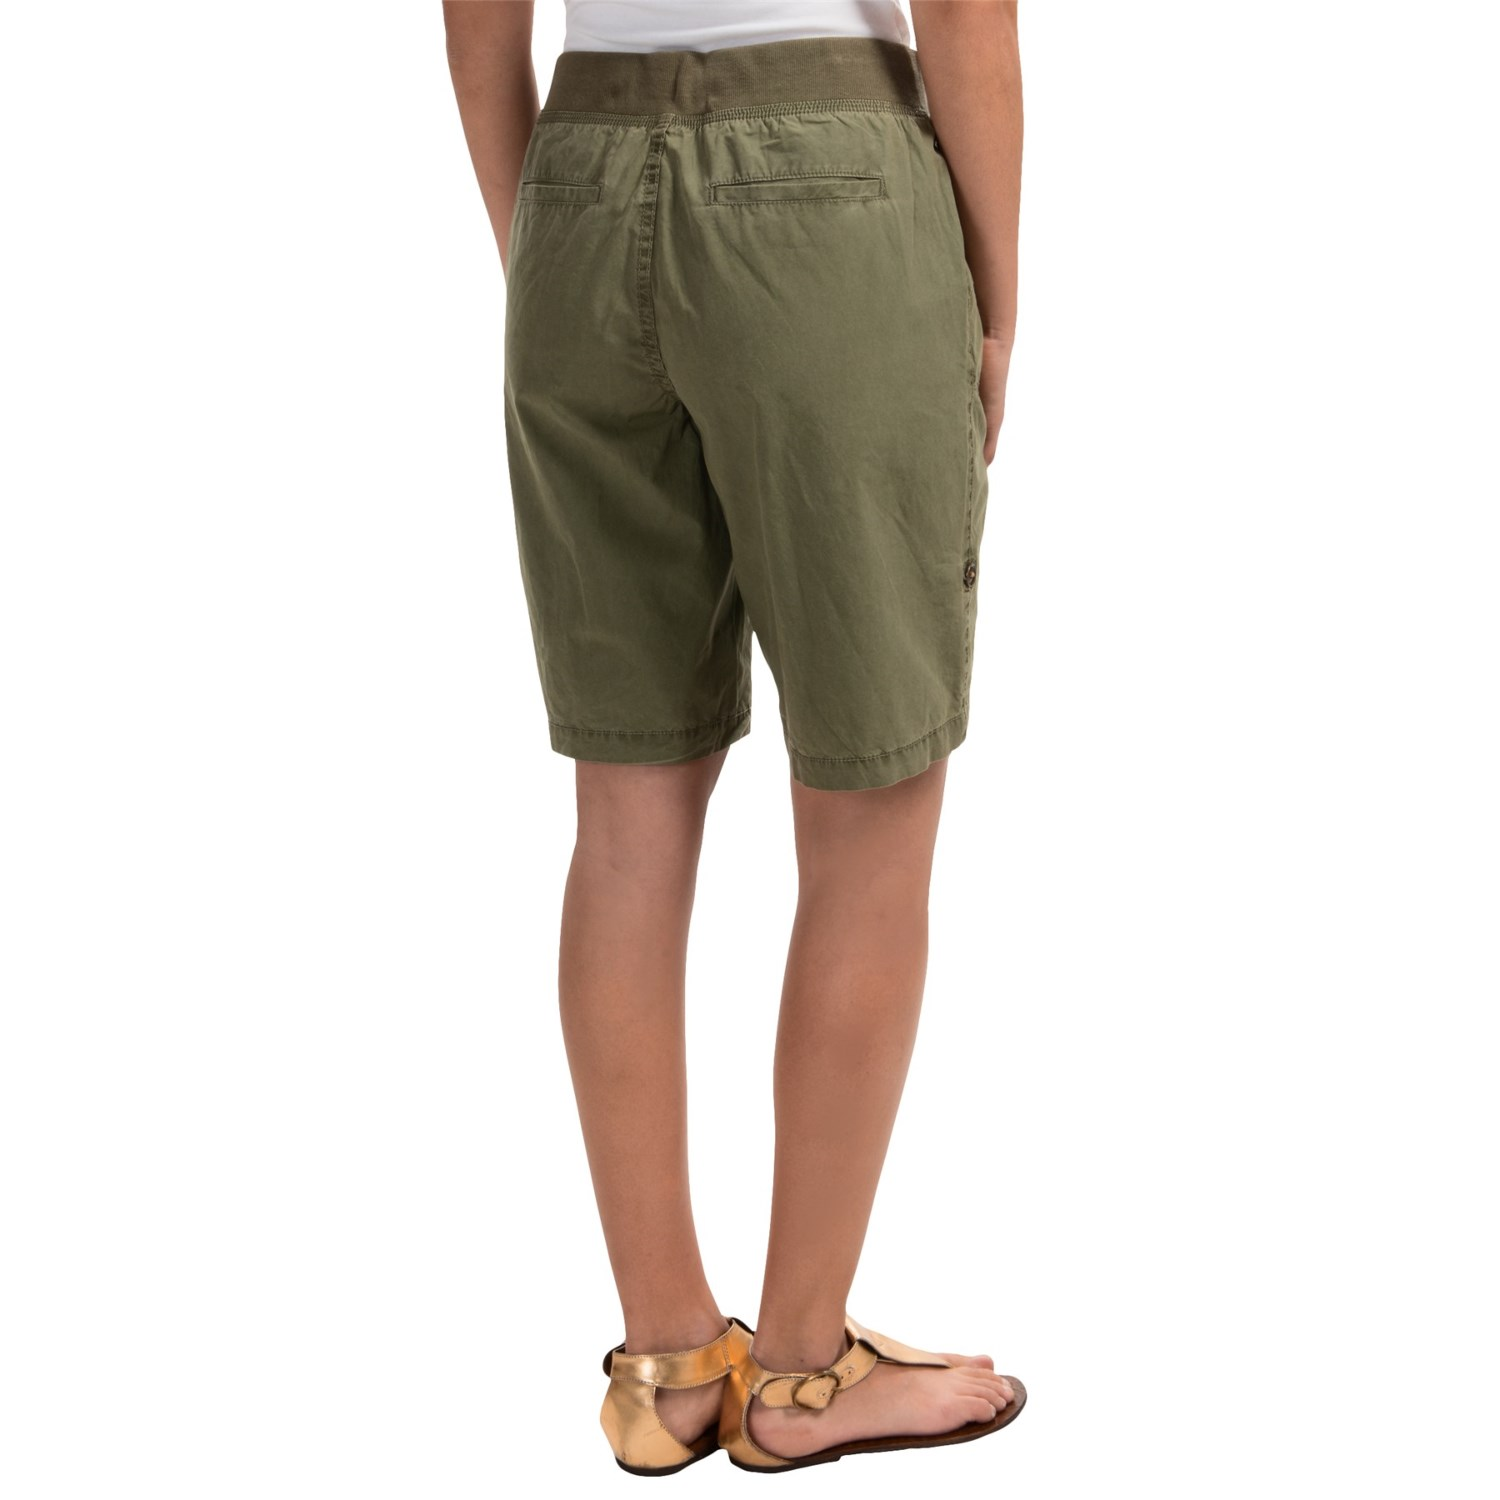 Find great deals on eBay for cotton shorts women. Shop with confidence.